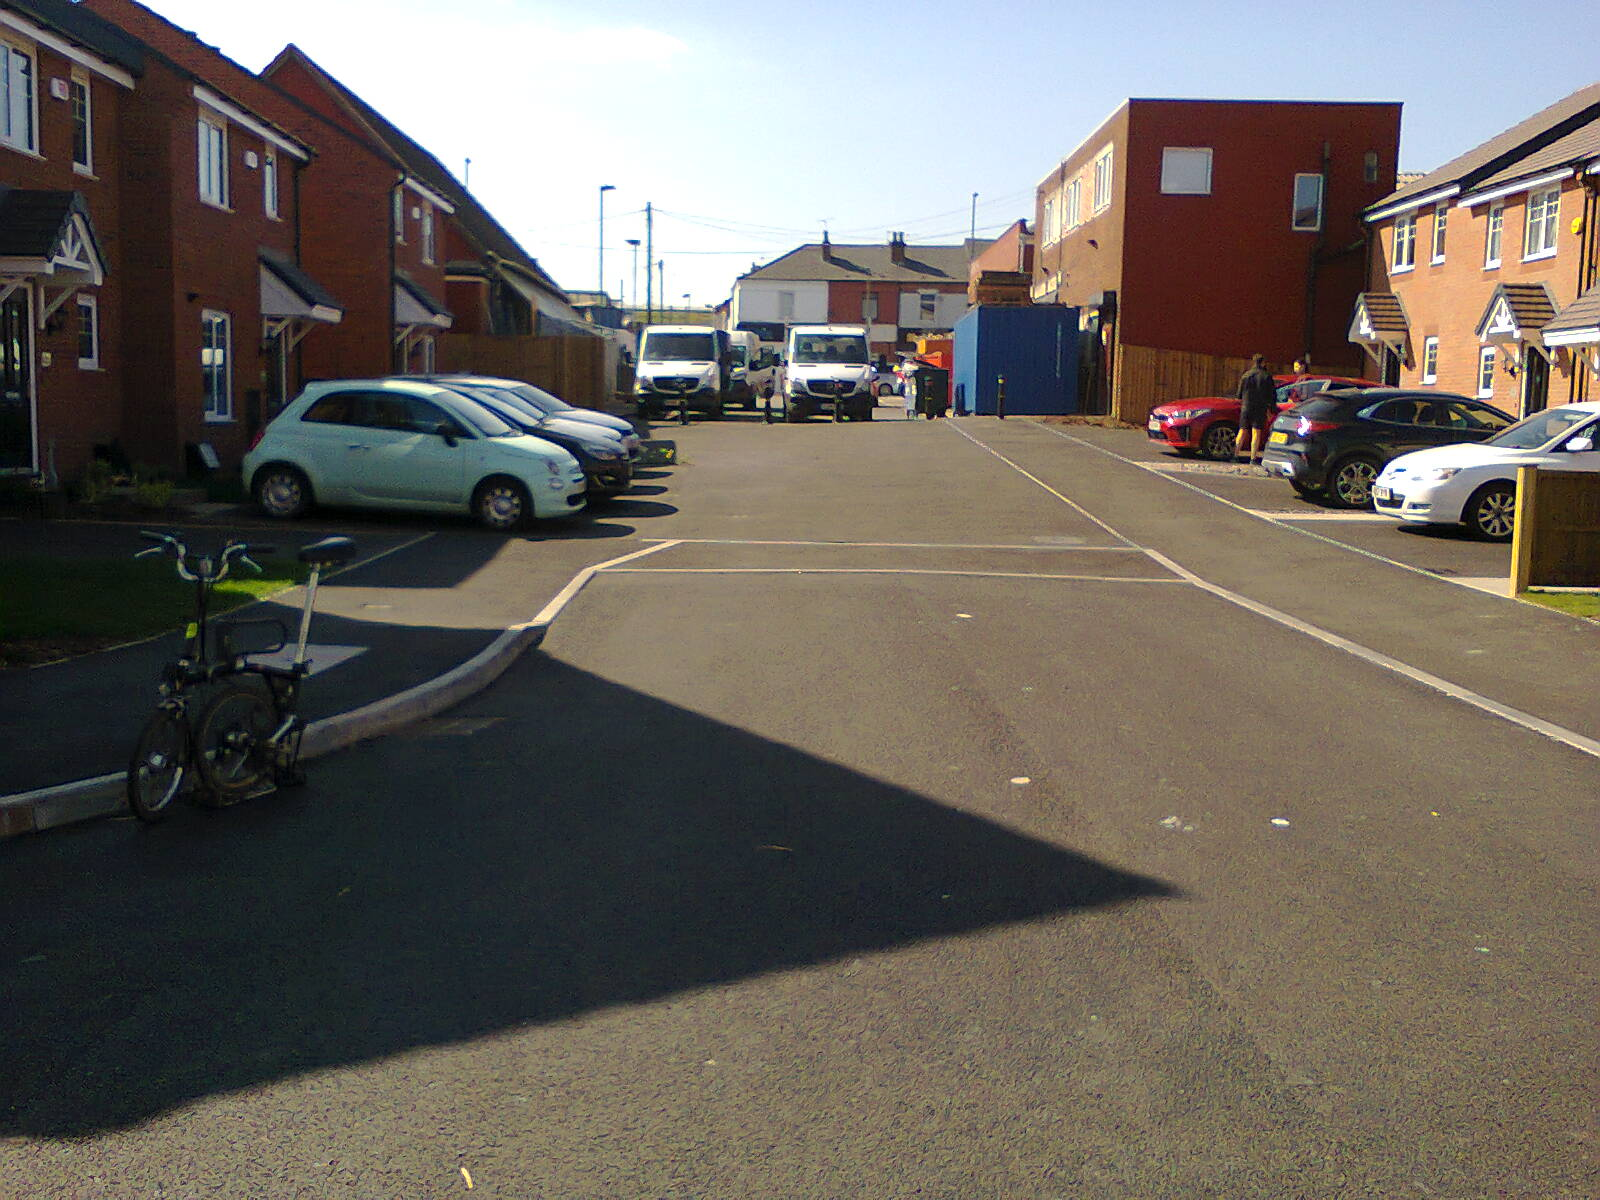 Mayfield Road - Iron Way Filtered Permeability